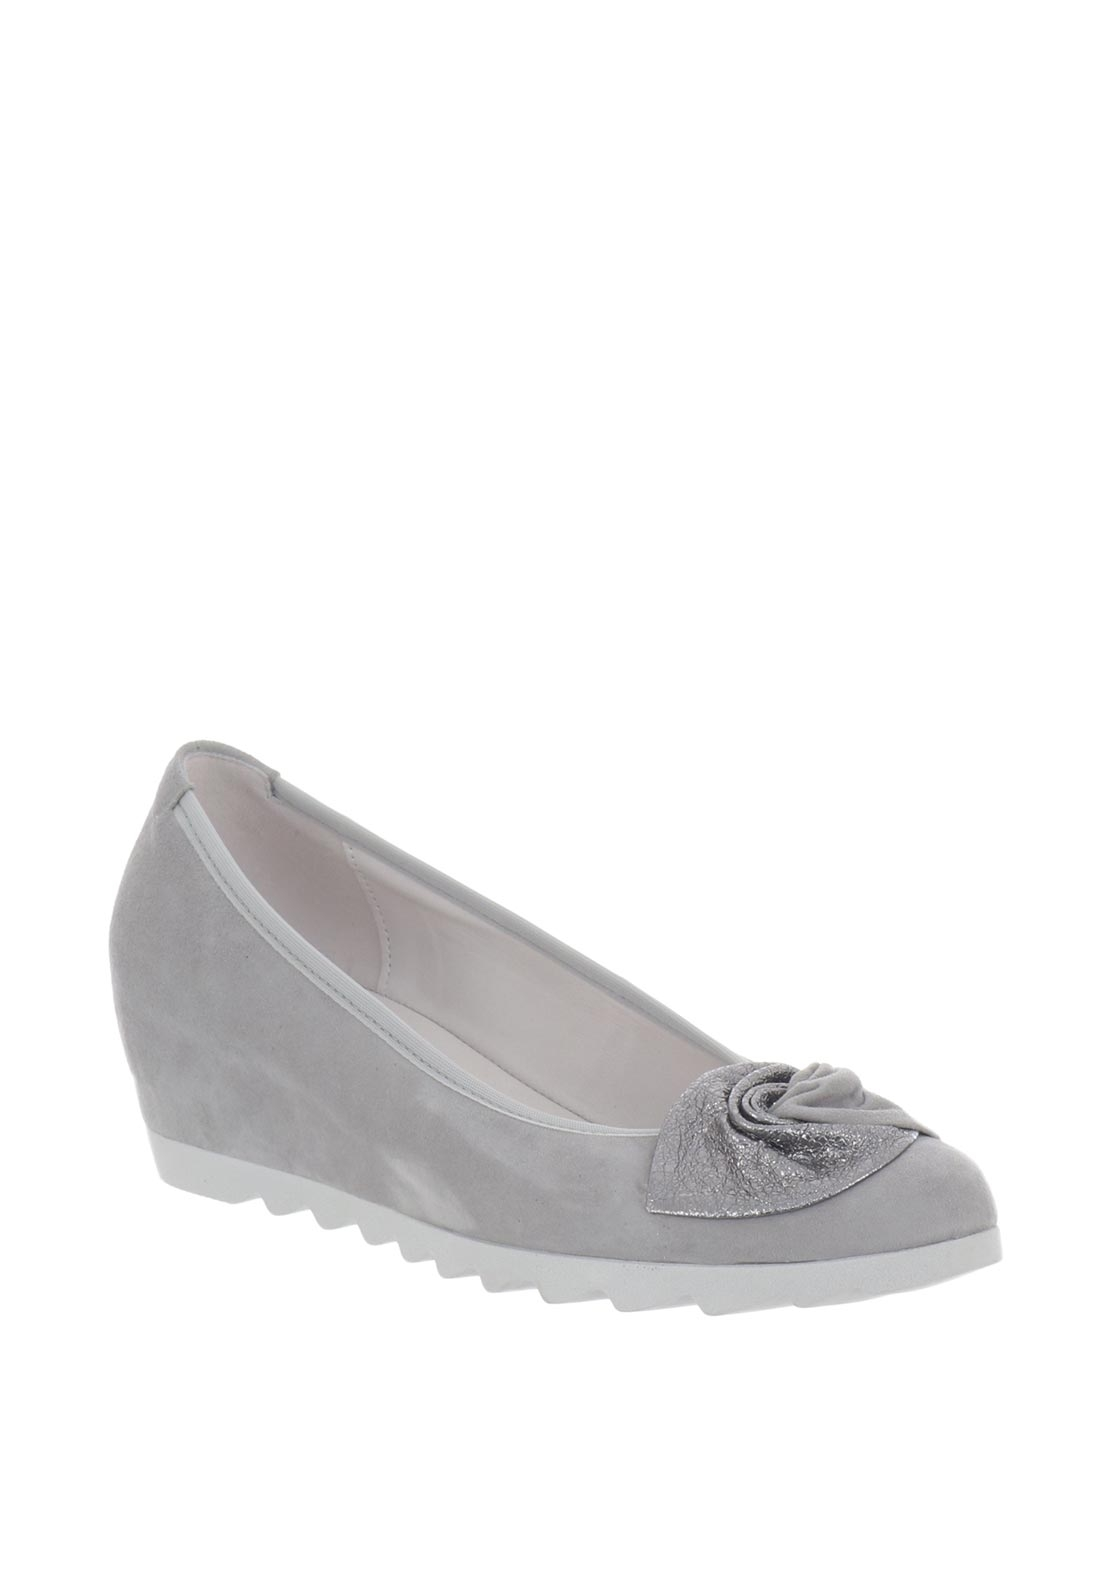 Gabor Suede Corsage Wedged Pumps, Grey